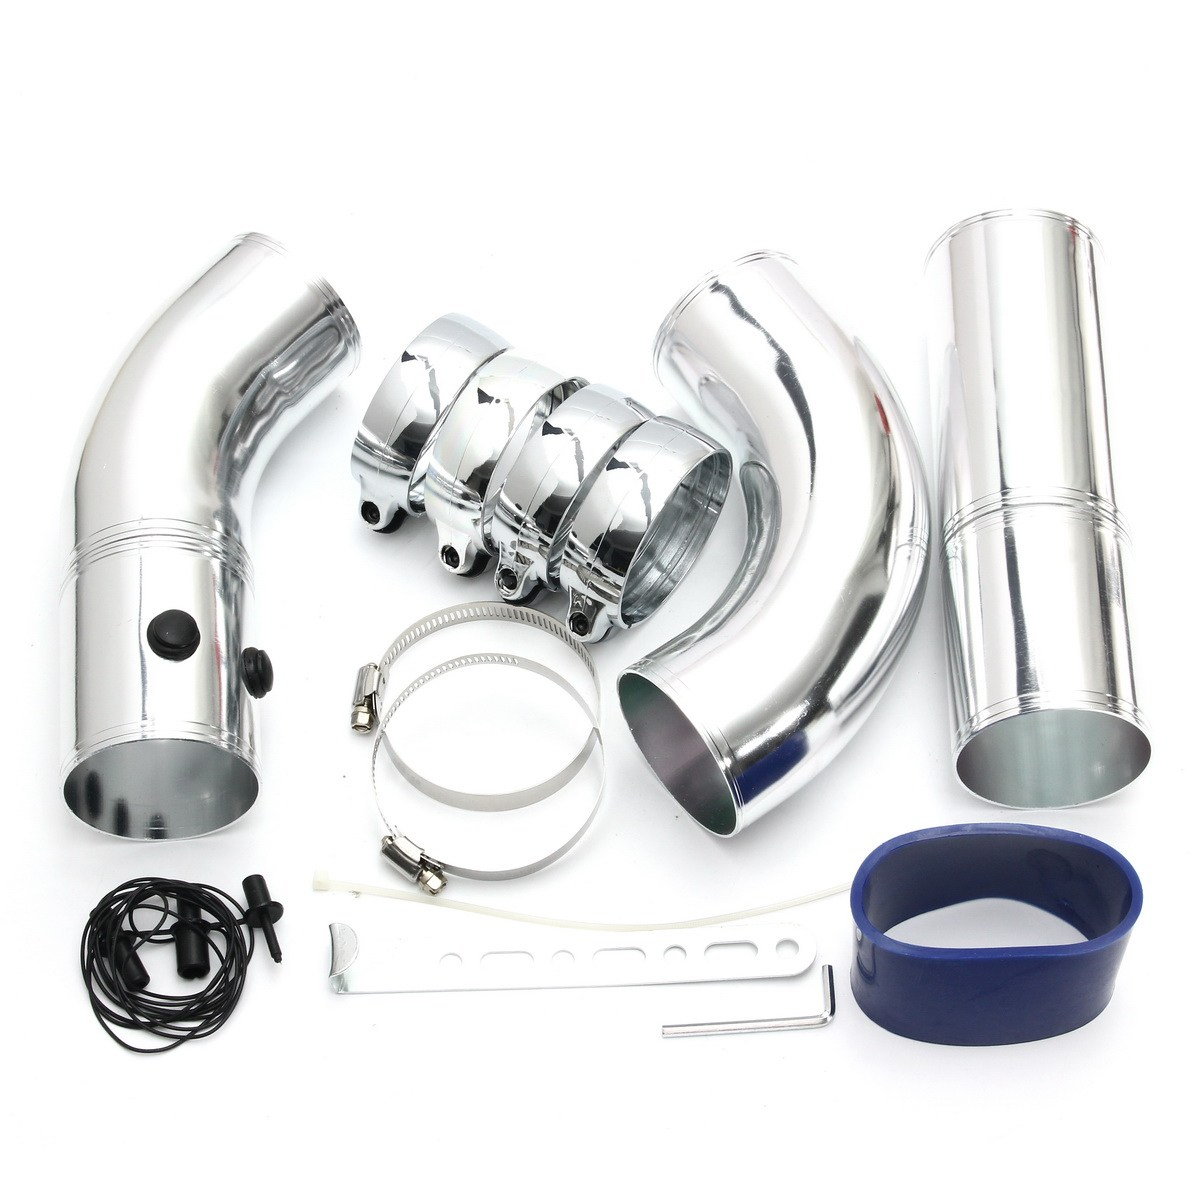 Universal 3 inch Air Intake Pipe/aluminum Alloy Intake Pipe Kit Turbo Direct Cold Air Filter Injection System f007 vacuum pump intake air filter assembly fan air filter assembly interface 3 inch wire height 258mm outside diameter 222mm